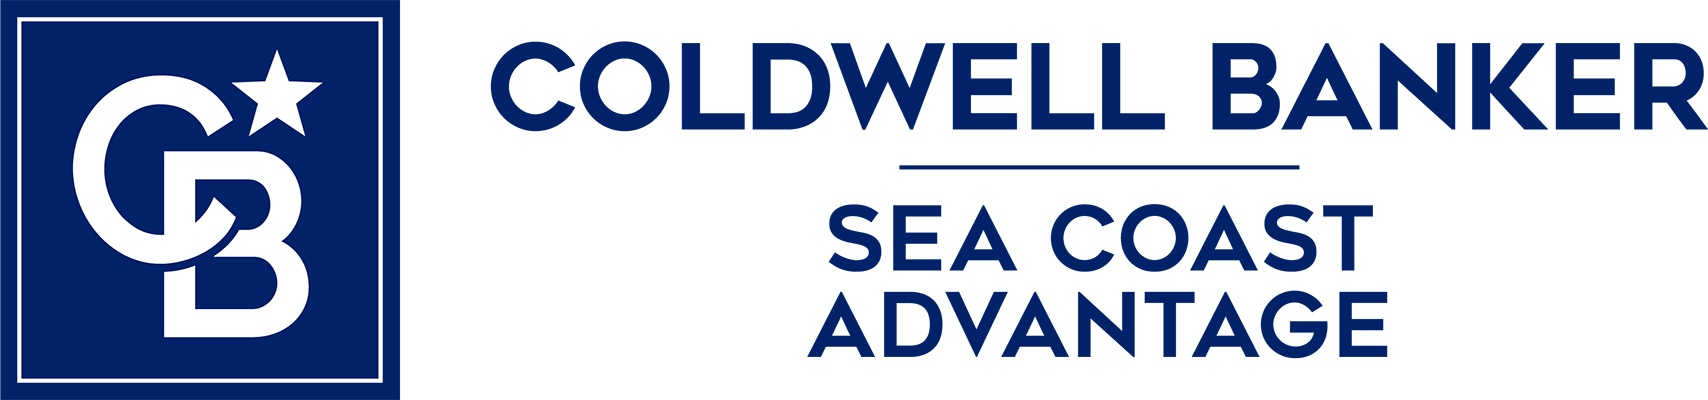 Trenney Eason - Coldwell Banker Sea Coast Advantage Realty Logo